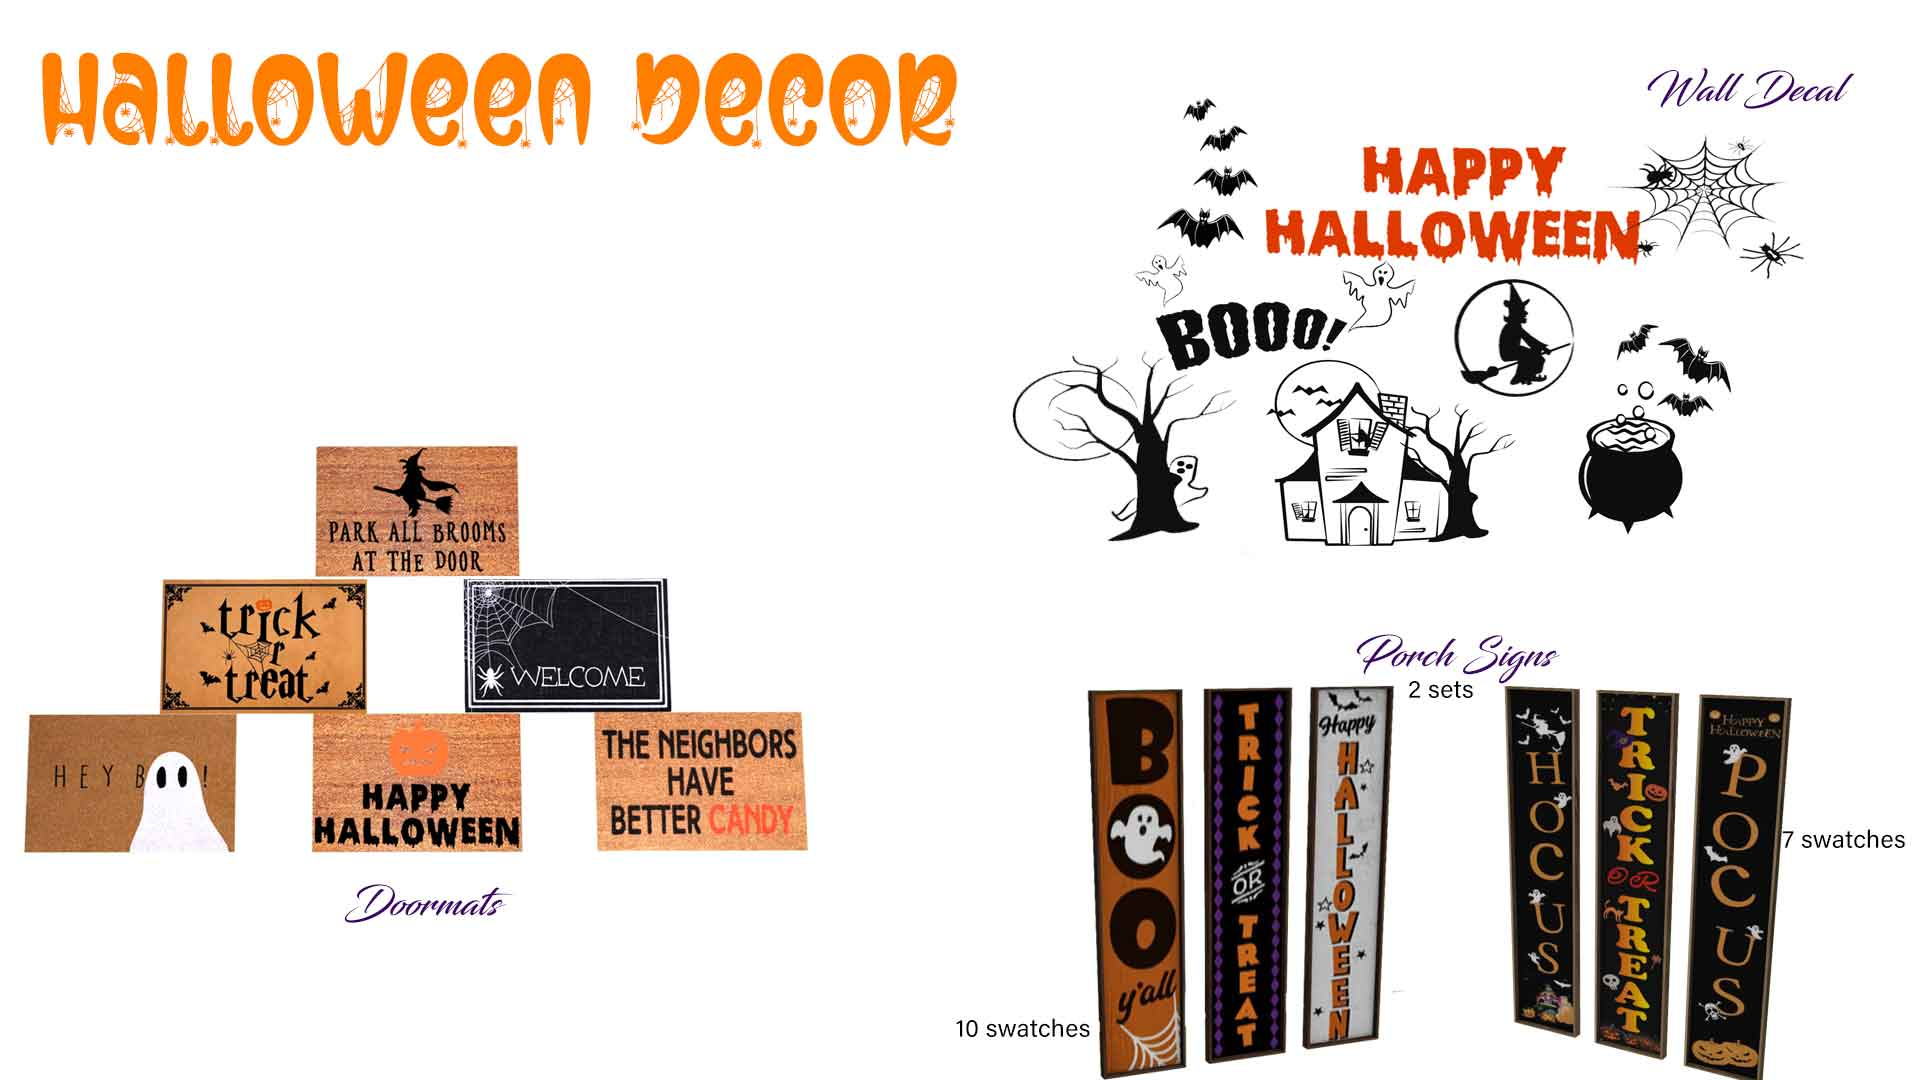 Halloween Decor, high quality sims 4 cc, sunkissedlilacs, free sims 4 furniture, sims 4 custom content,